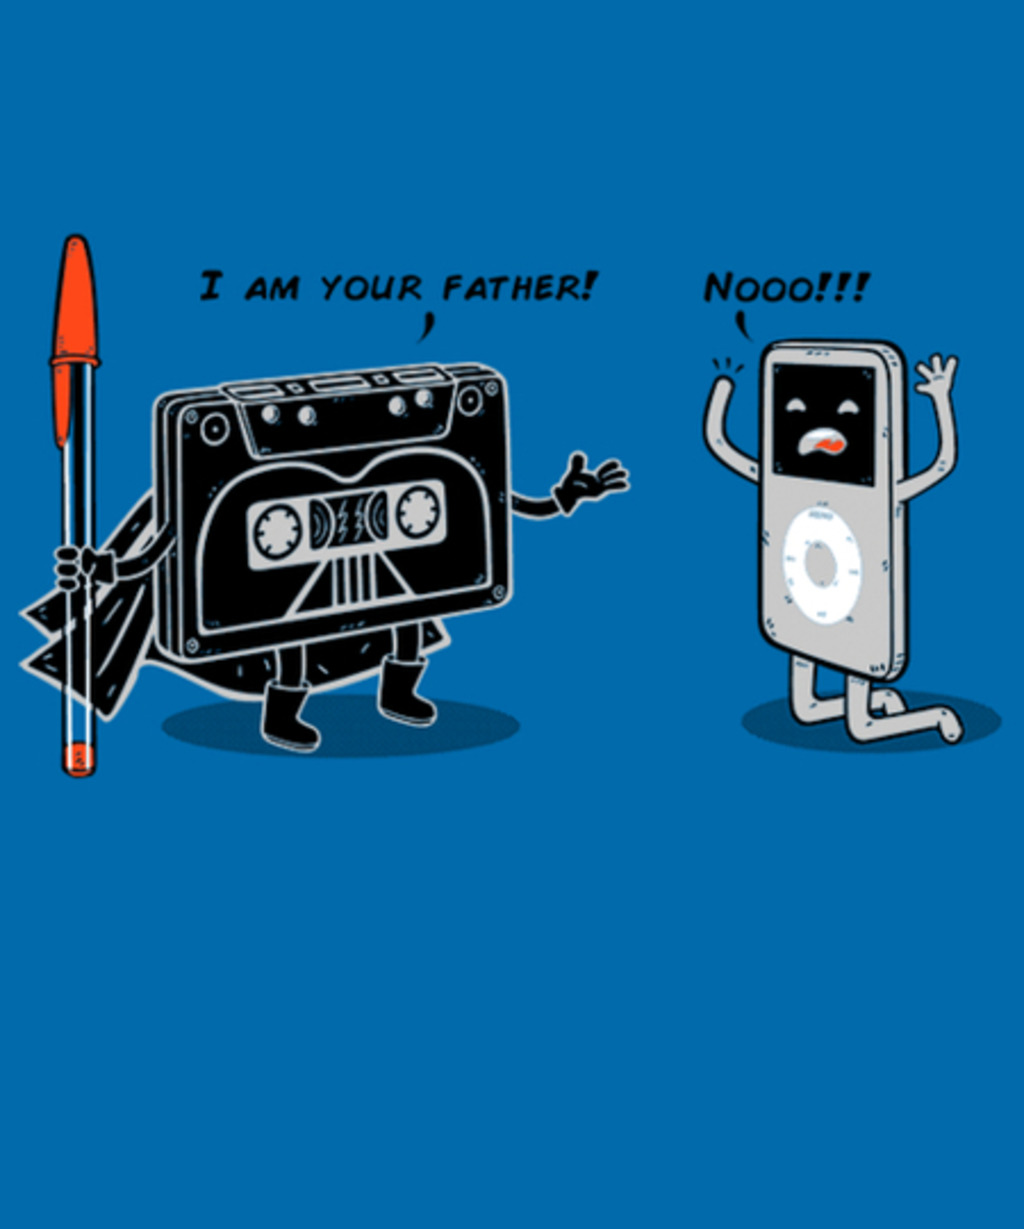 Qwertee: I am your father! V2